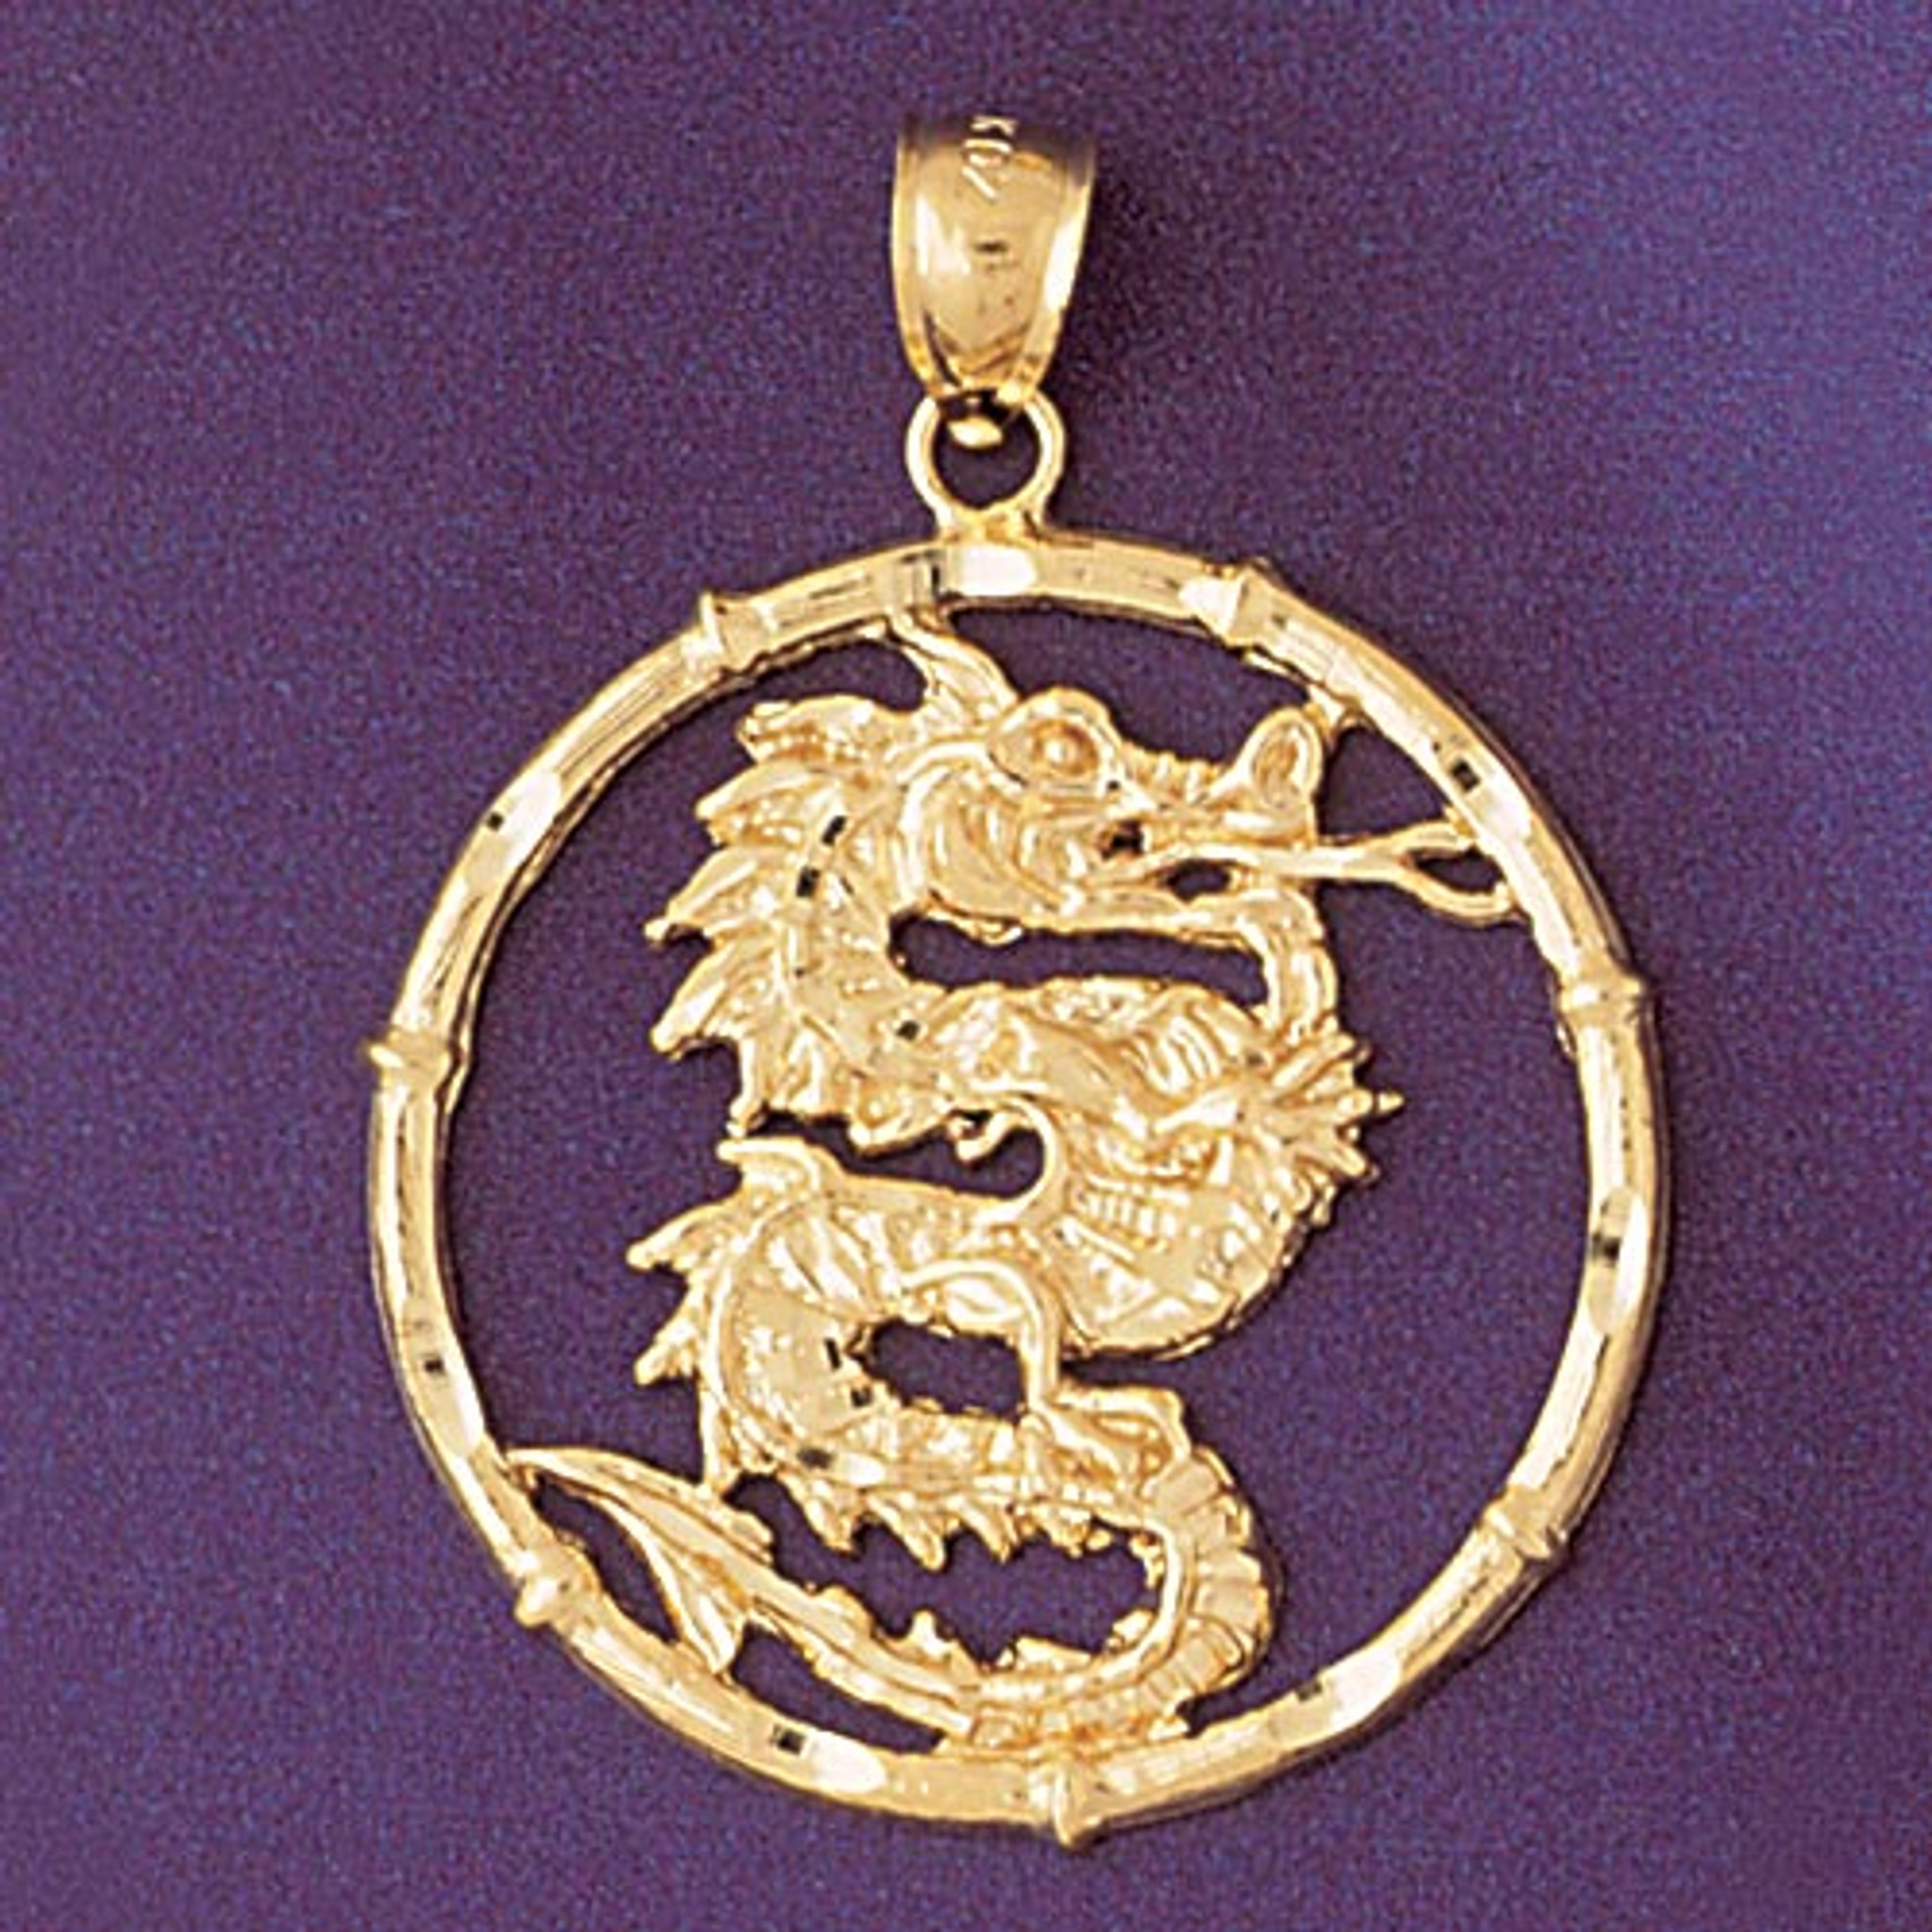 Dragon Chinese Zodiac Pendant Necklace Charm Bracelet in Gold or Silver 9307